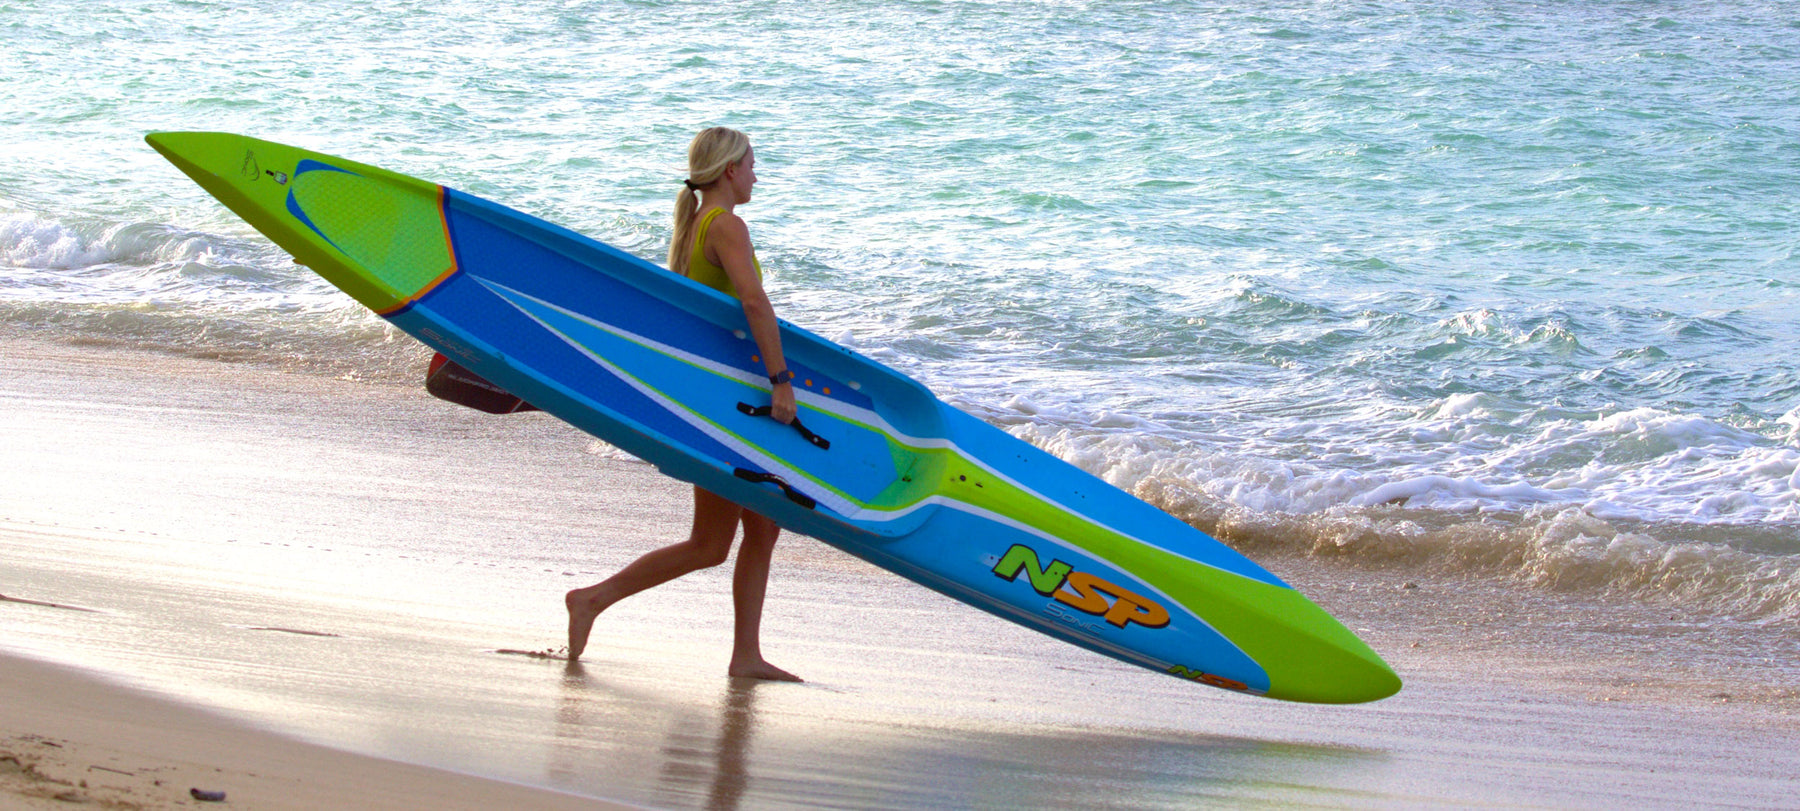 annie reickert paddling an nsp sonic